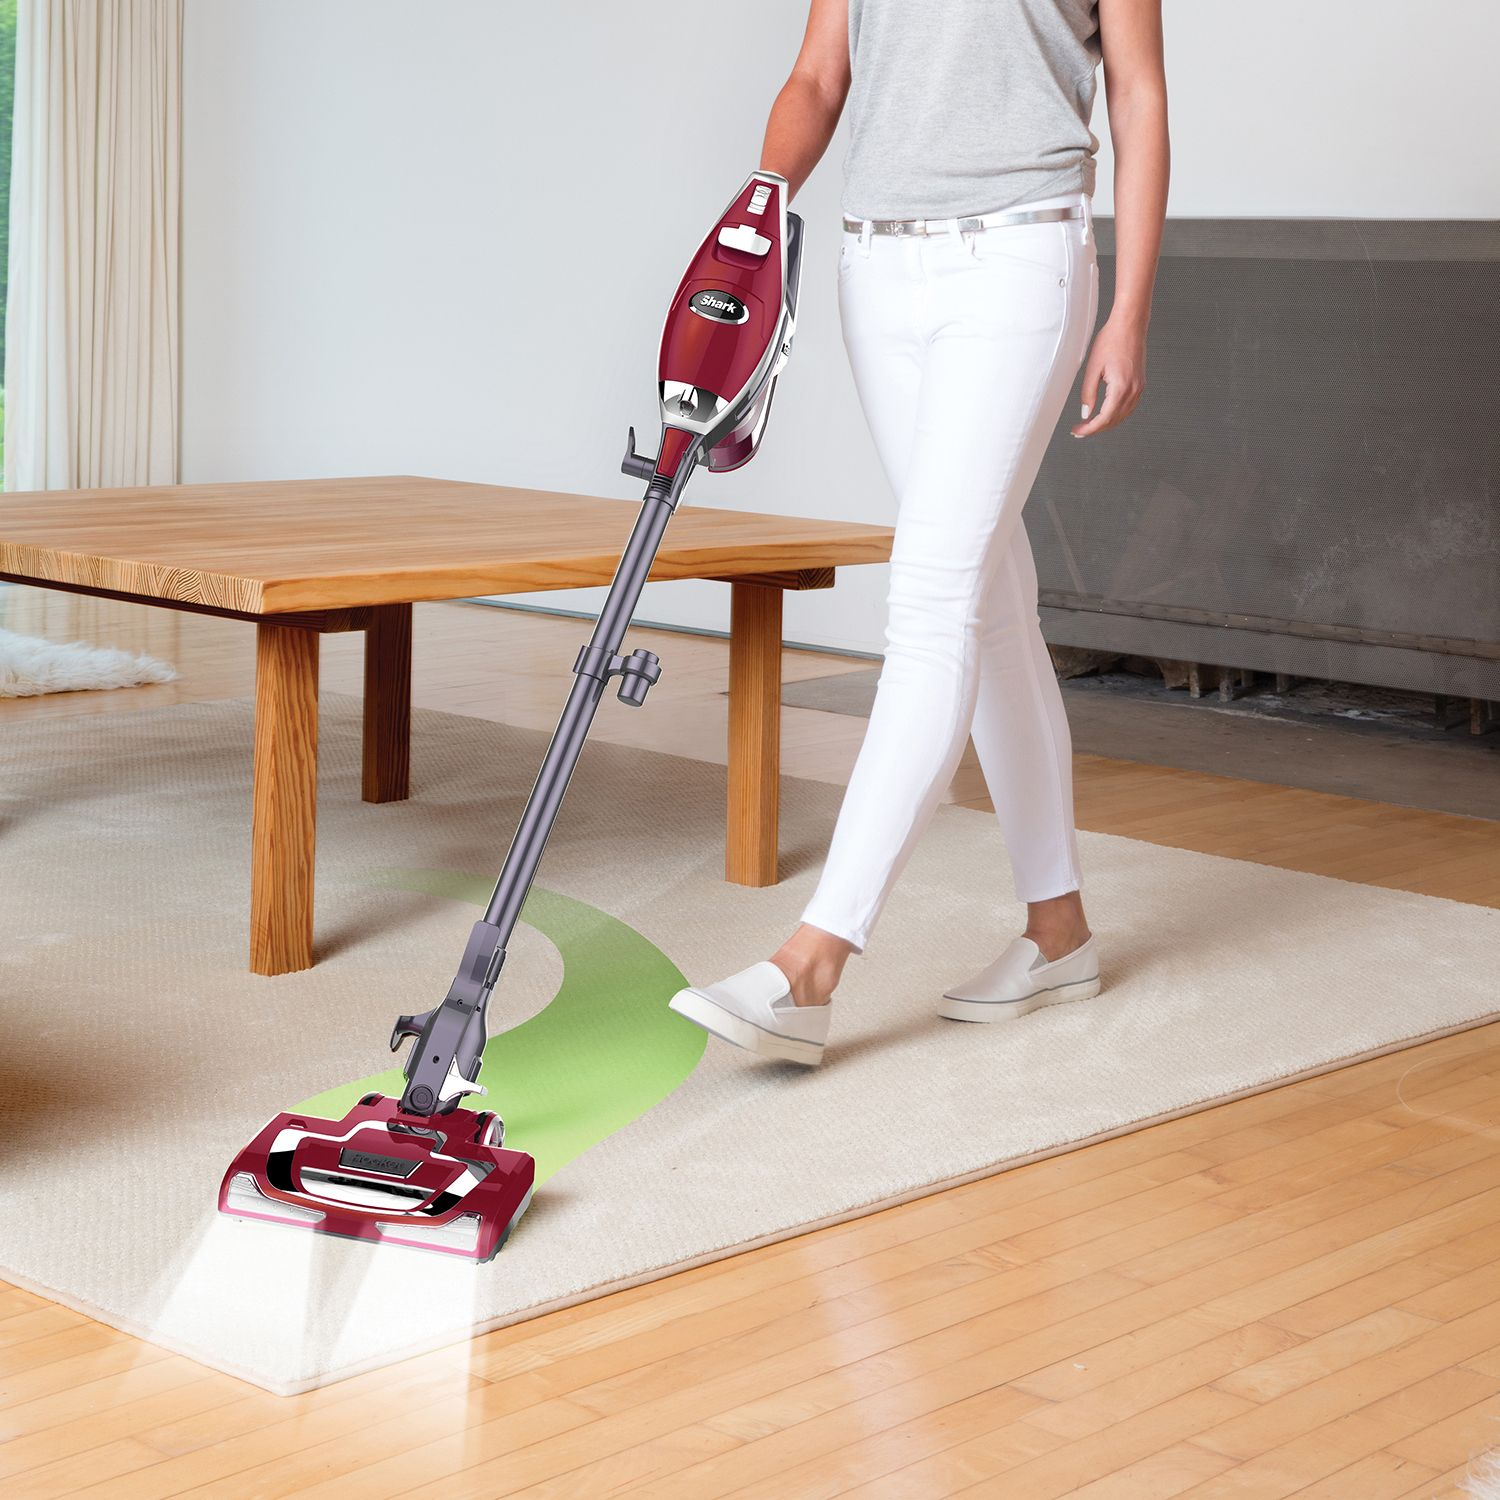 in floor robotic s wood box the htm review pilot max what vacuum